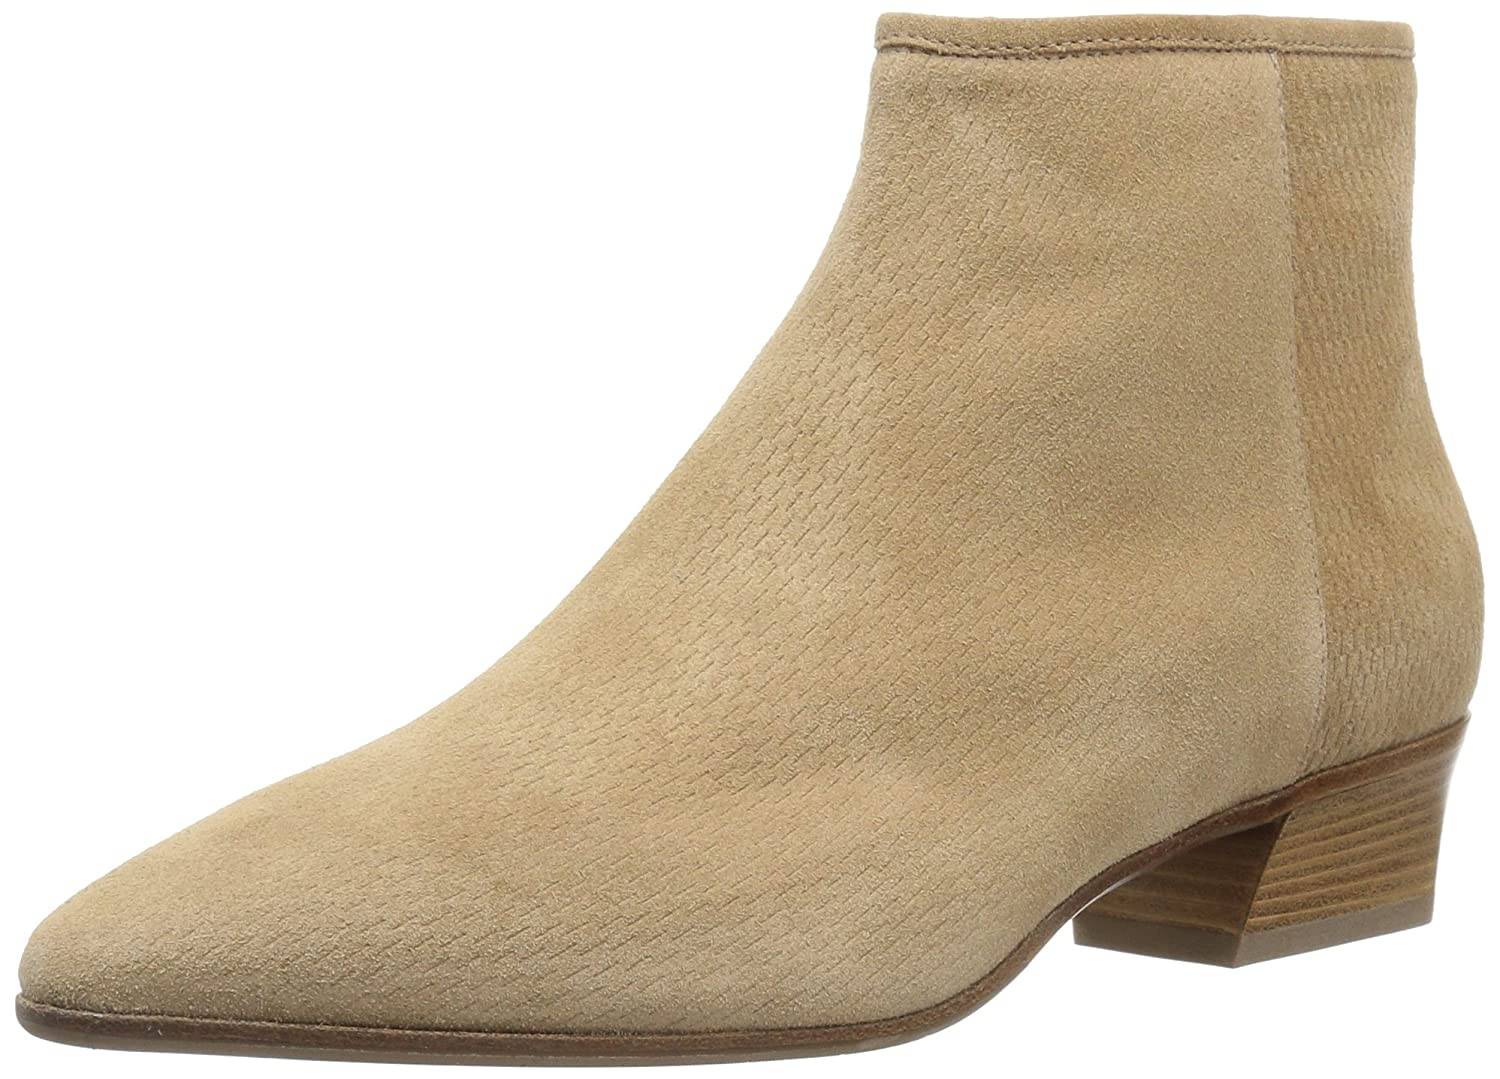 Aquatalia Women's Fire Perforated Suede Ankle Boot B0721QTJ12 10.5 B(M) US|Sand